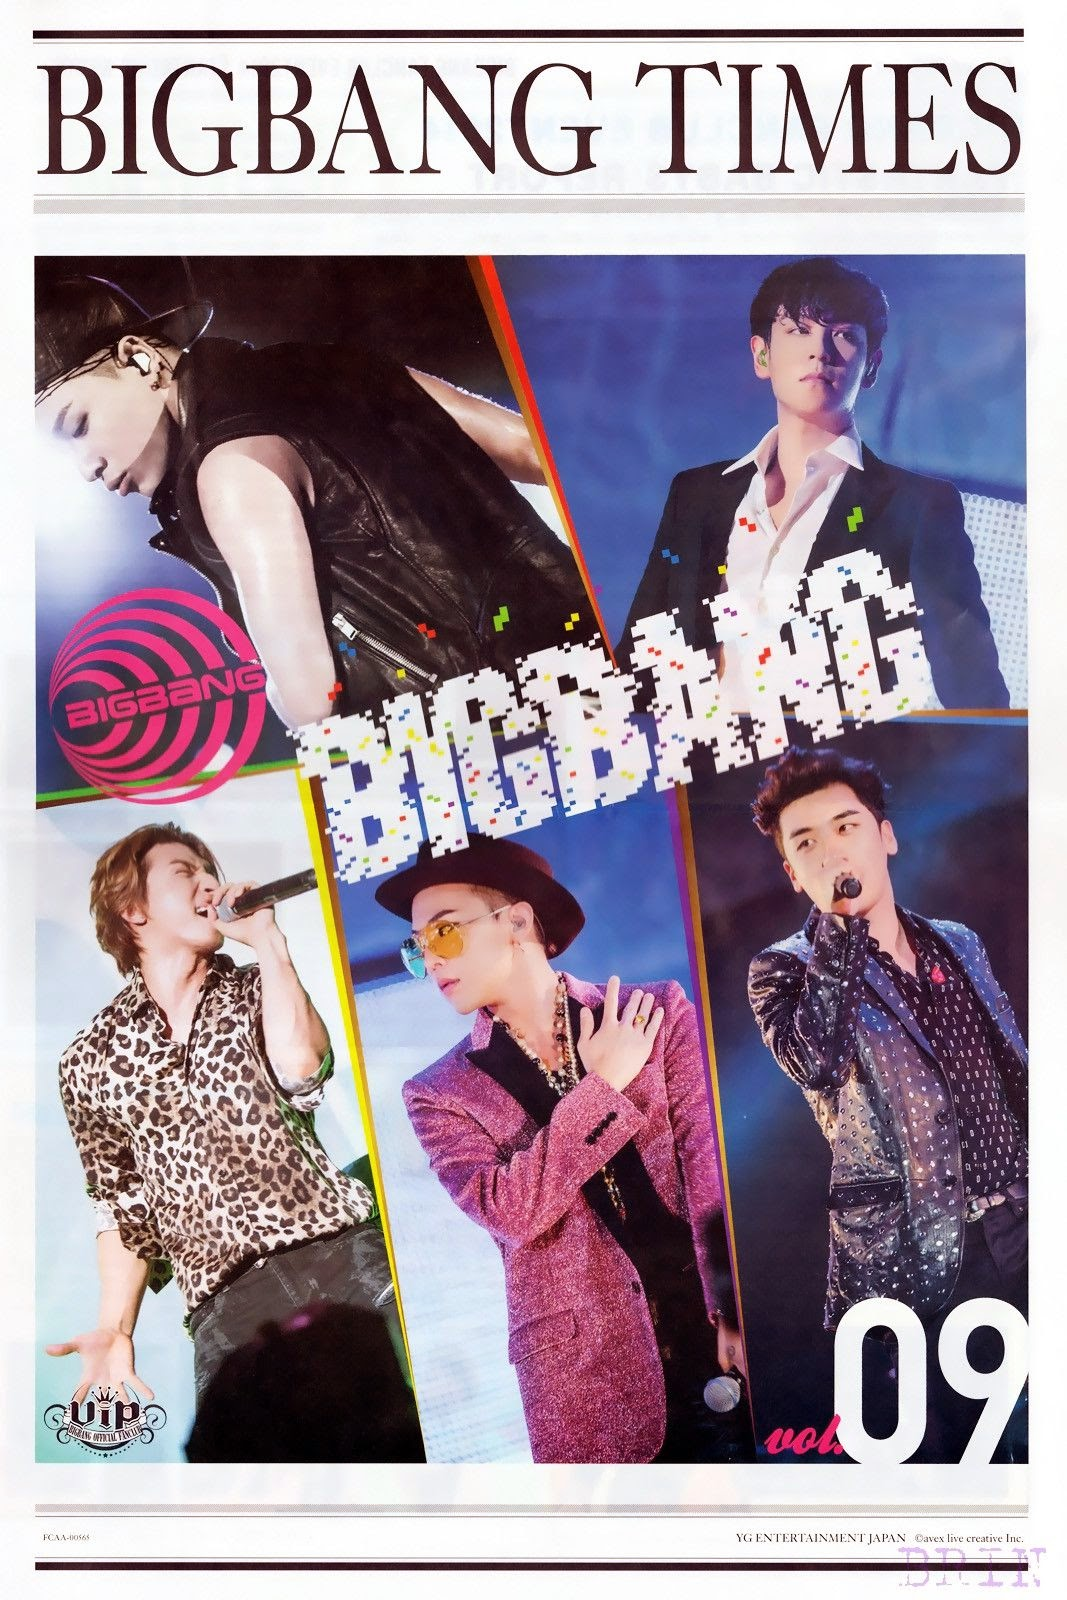 Scans: Big Bang Times Volume 09 [PHOTOS]